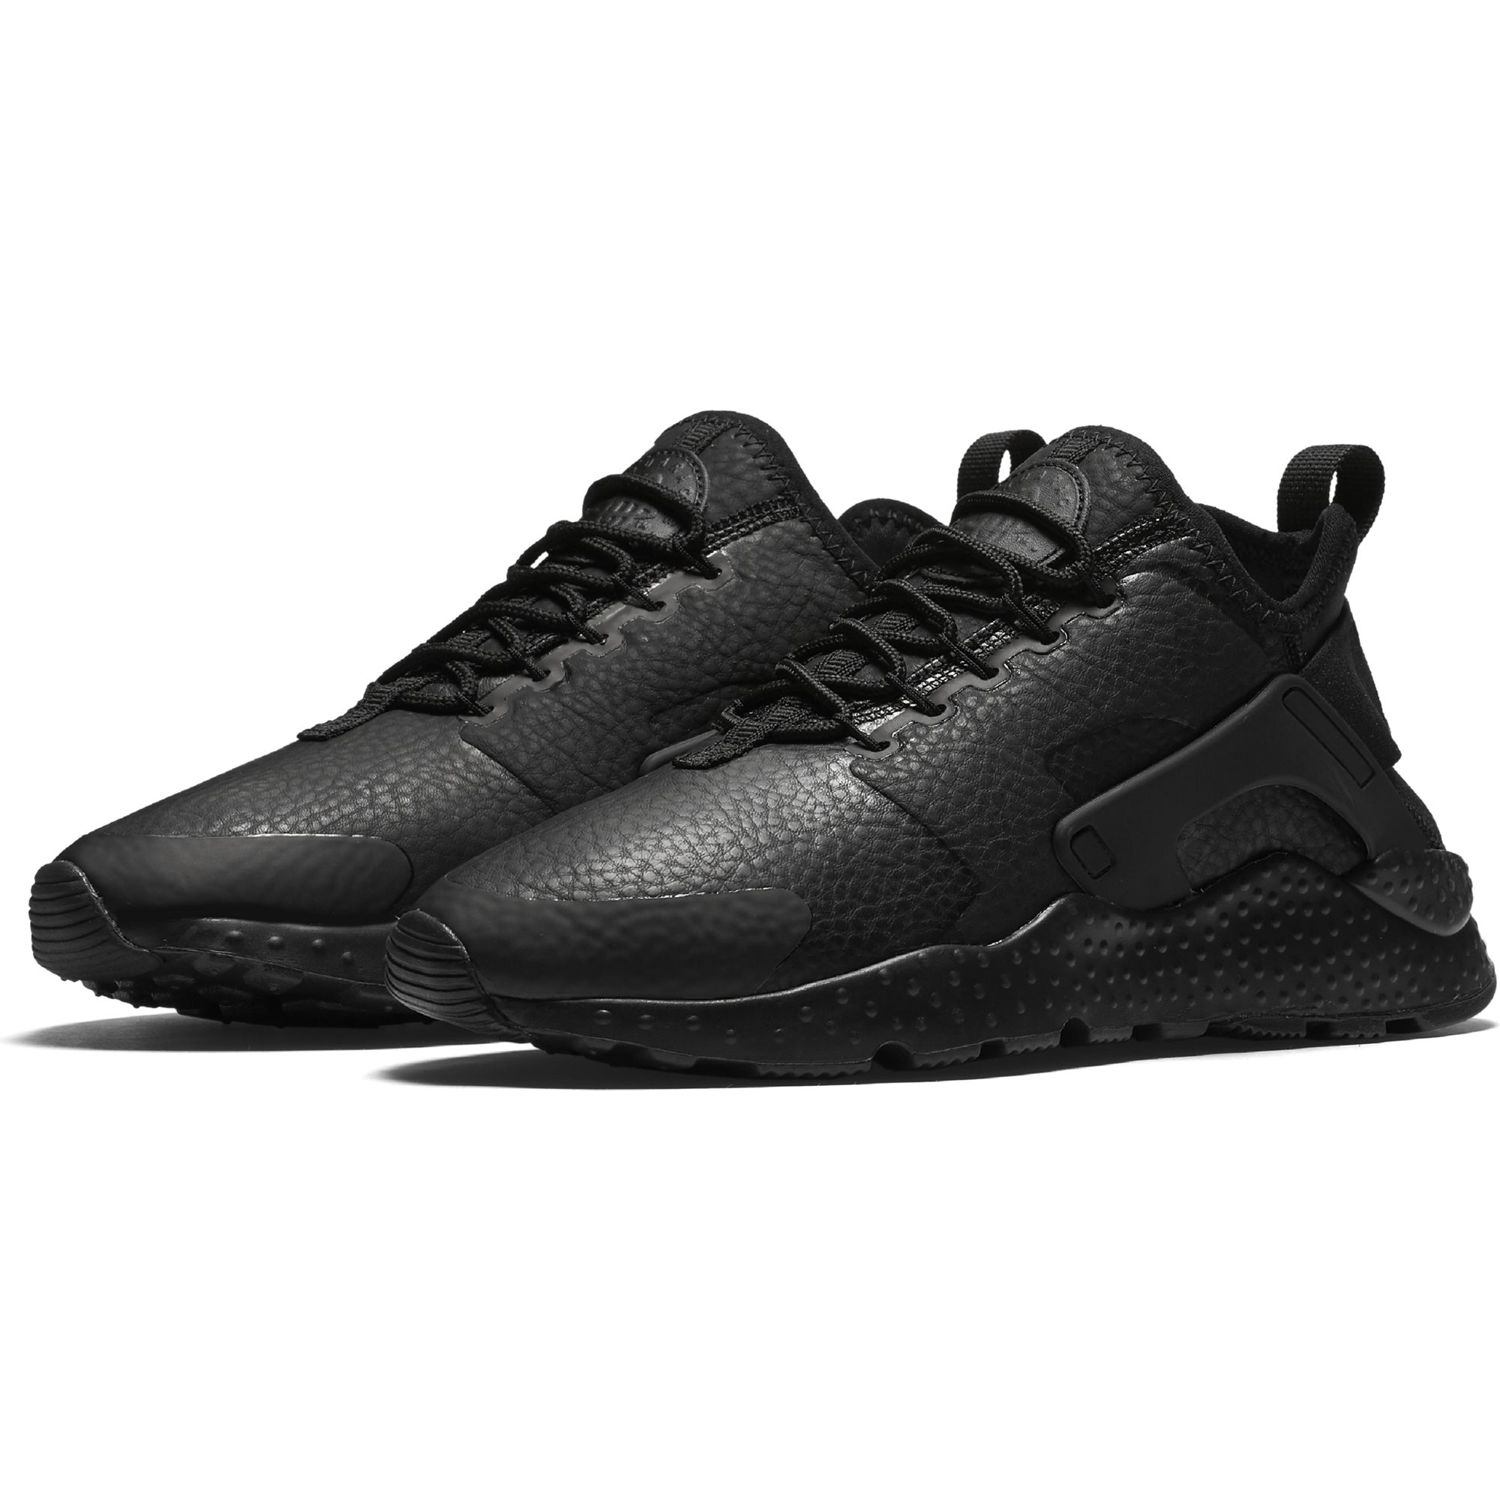 Nike Air Huarache Run Ultra Premium 859511 002